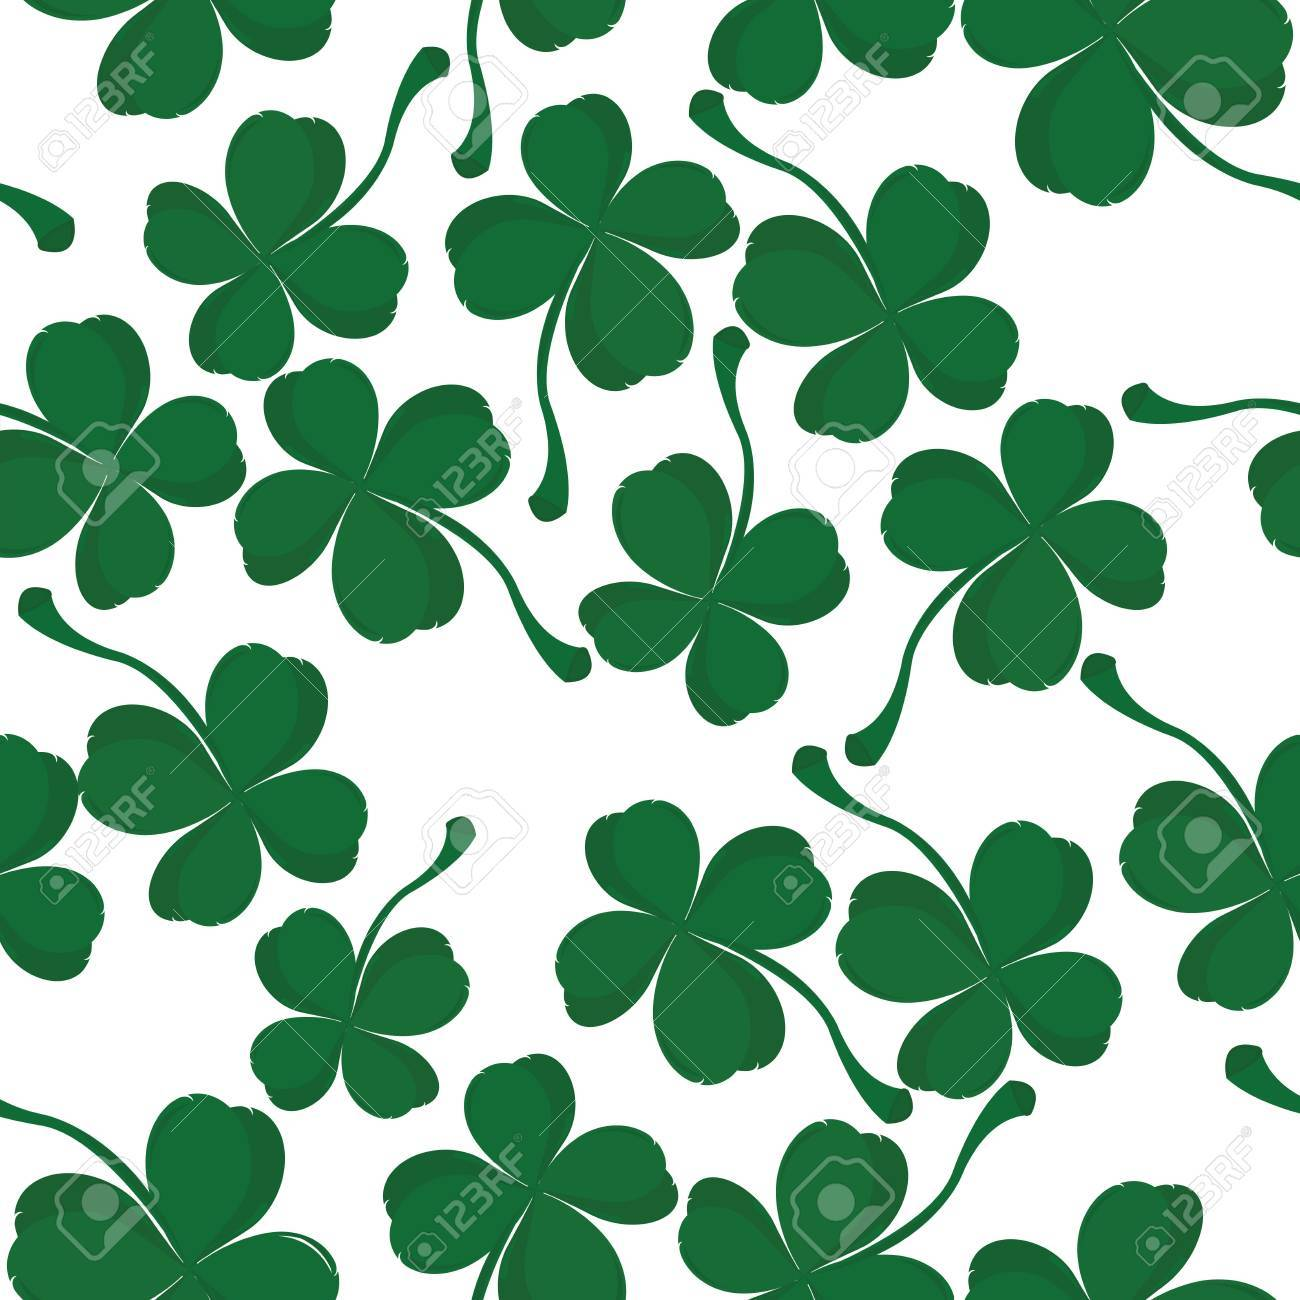 Four leaves clover pattern, background for Saint Patrick Day Stock Photo - 6196894